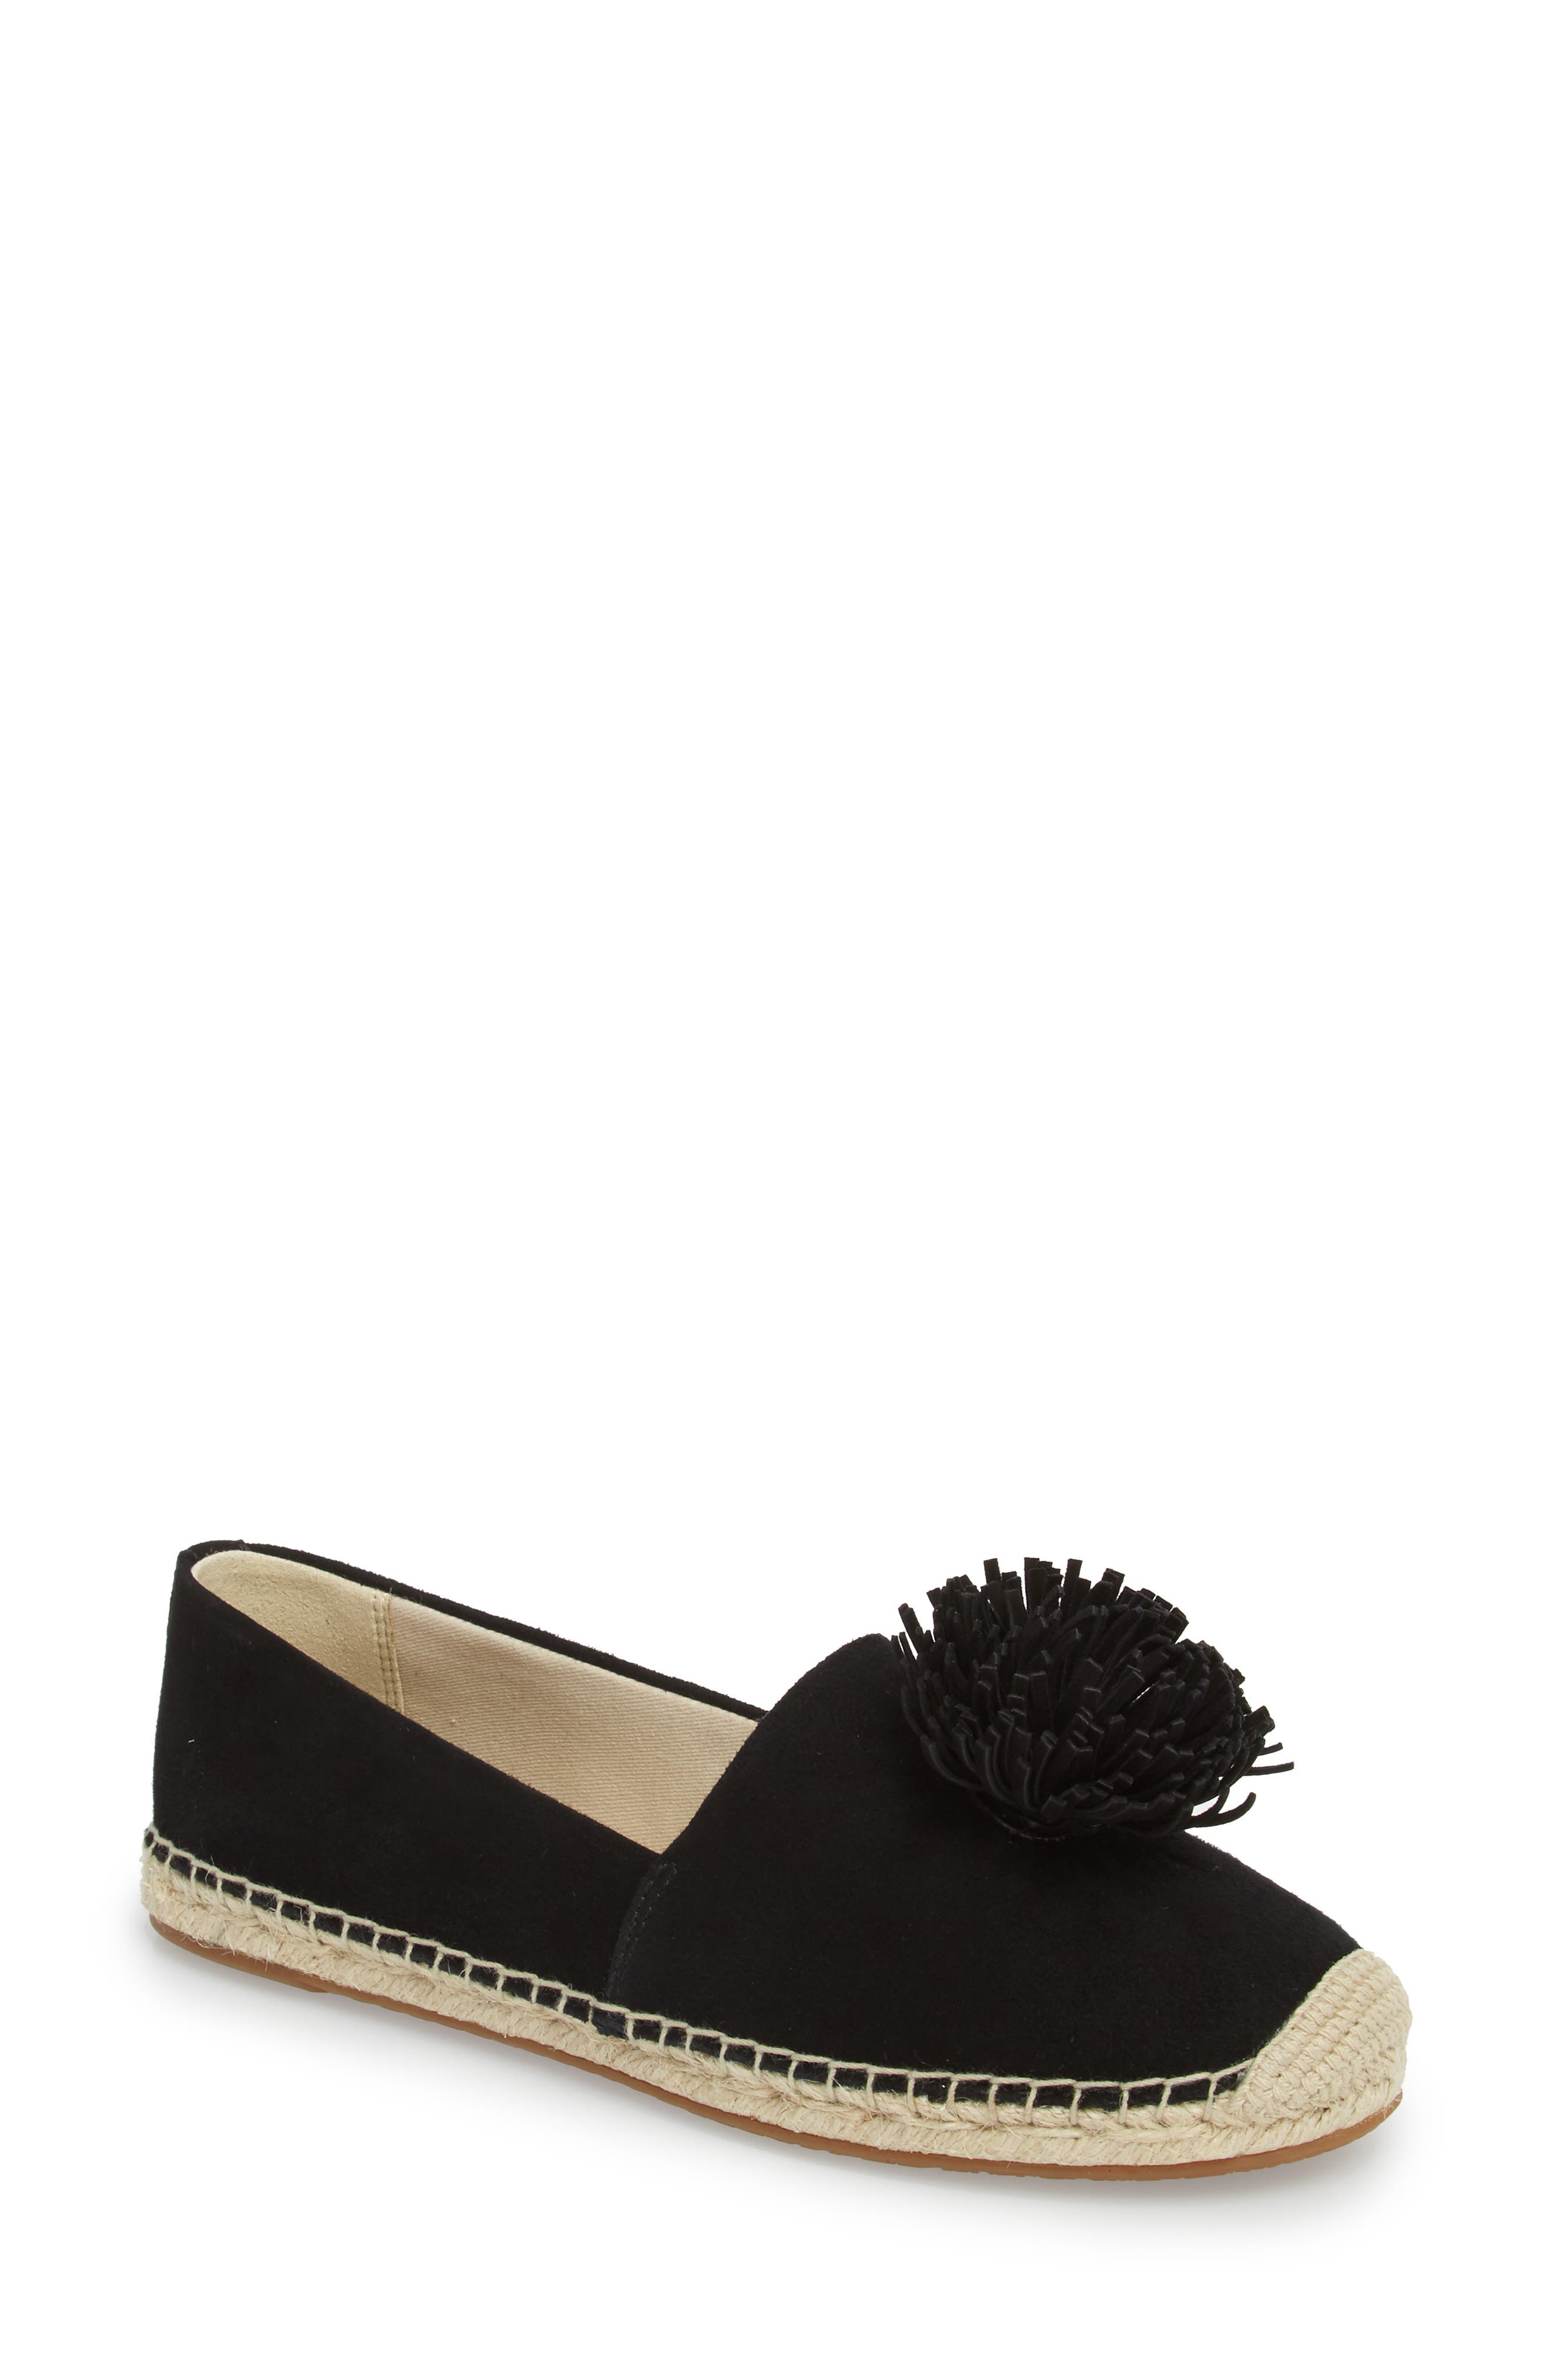 Alternate Image 1 Selected - MICHAEL Michael Kors Lolita Slip-On (Women)